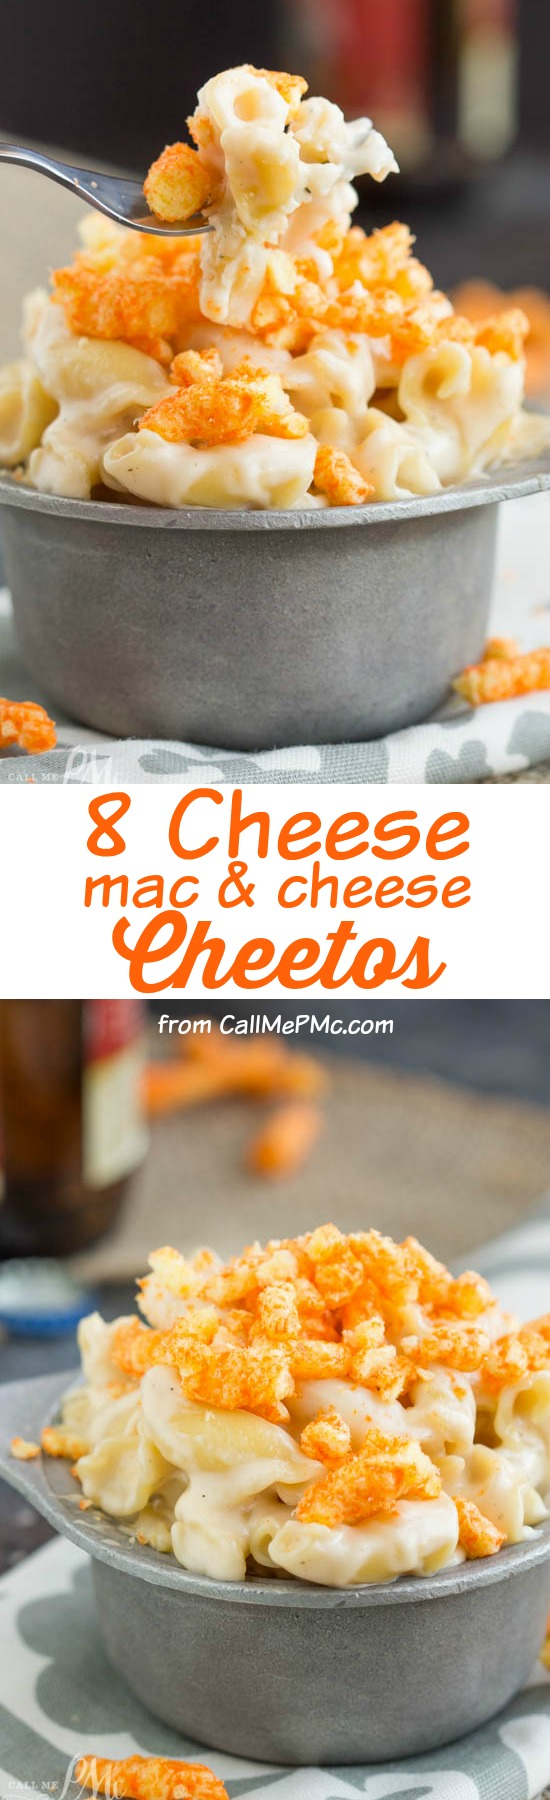 Eight Cheese Mac n Cheese with Cheetos Recipe is cheese on cheese on cheese then topped with crunchy cheesy Cheetos!